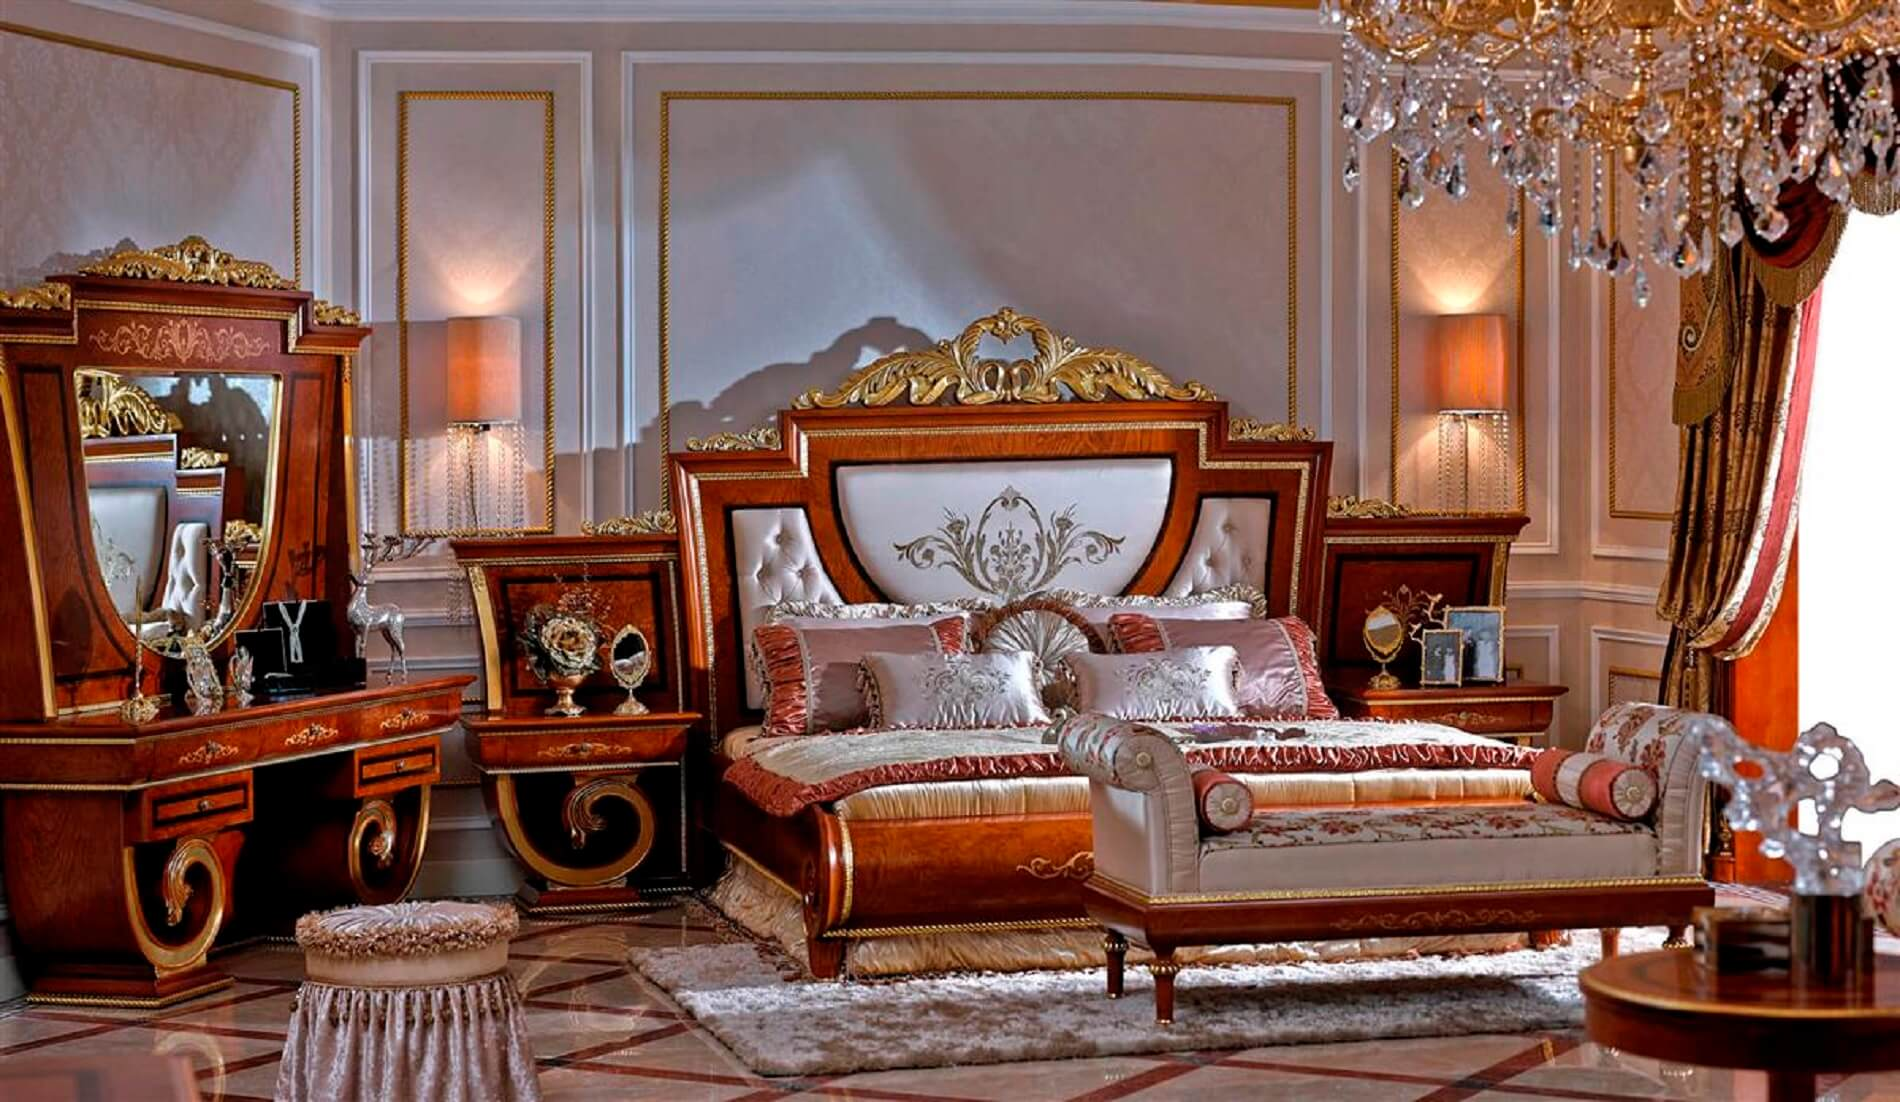 5 Piece Empire European Bedroom Set Luxury Series Usa Furniture Online